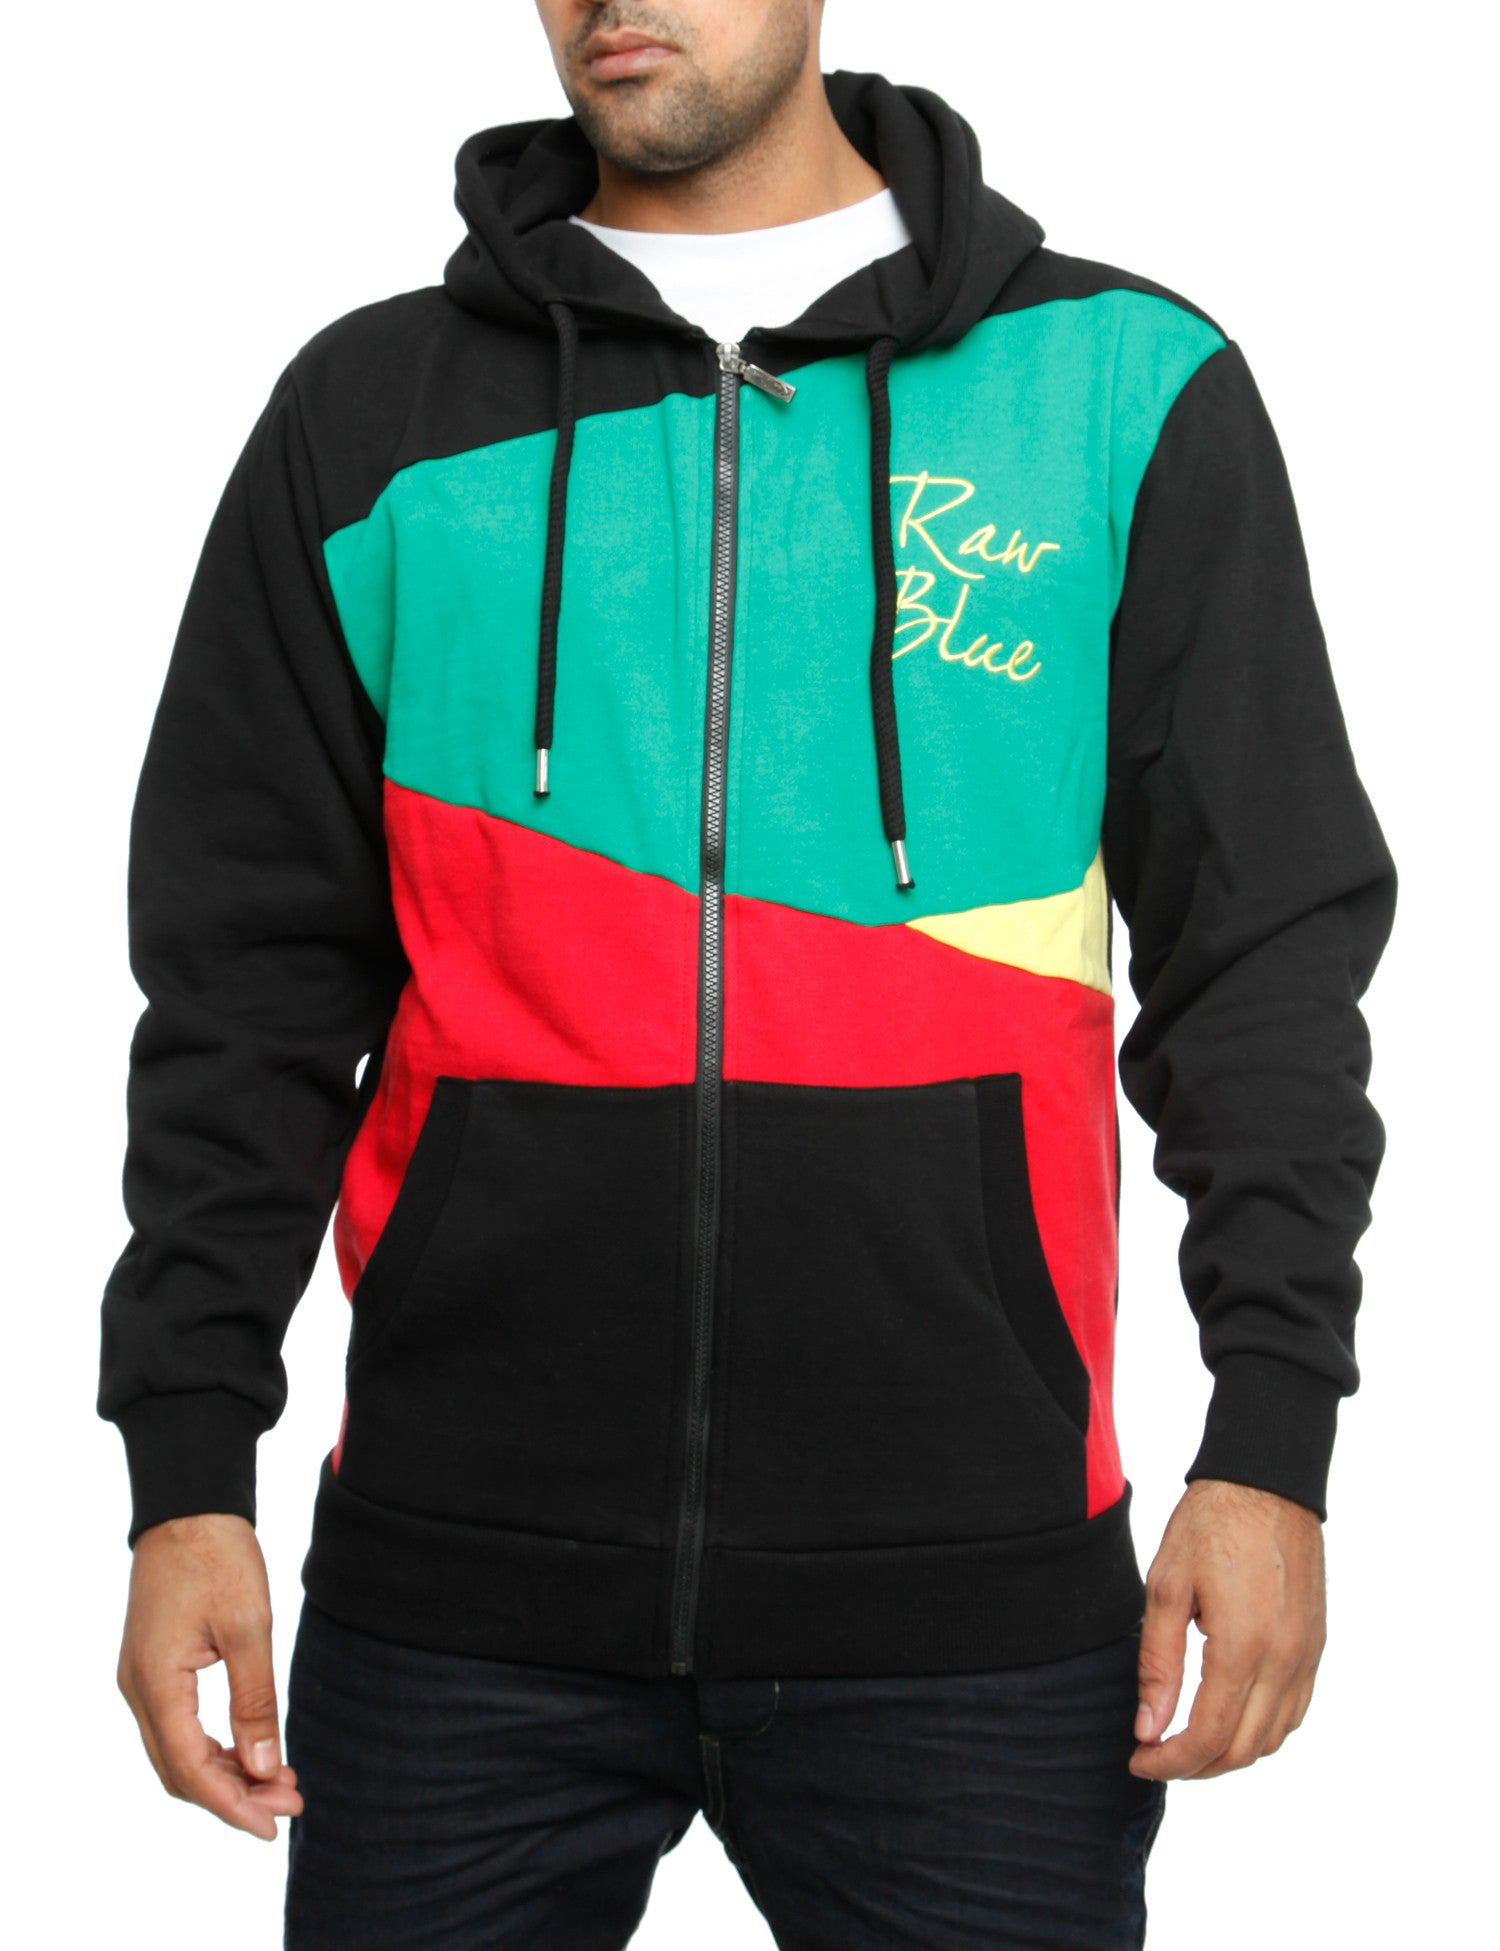 Raw Blue Zip Hoody RBCZ1007 Black